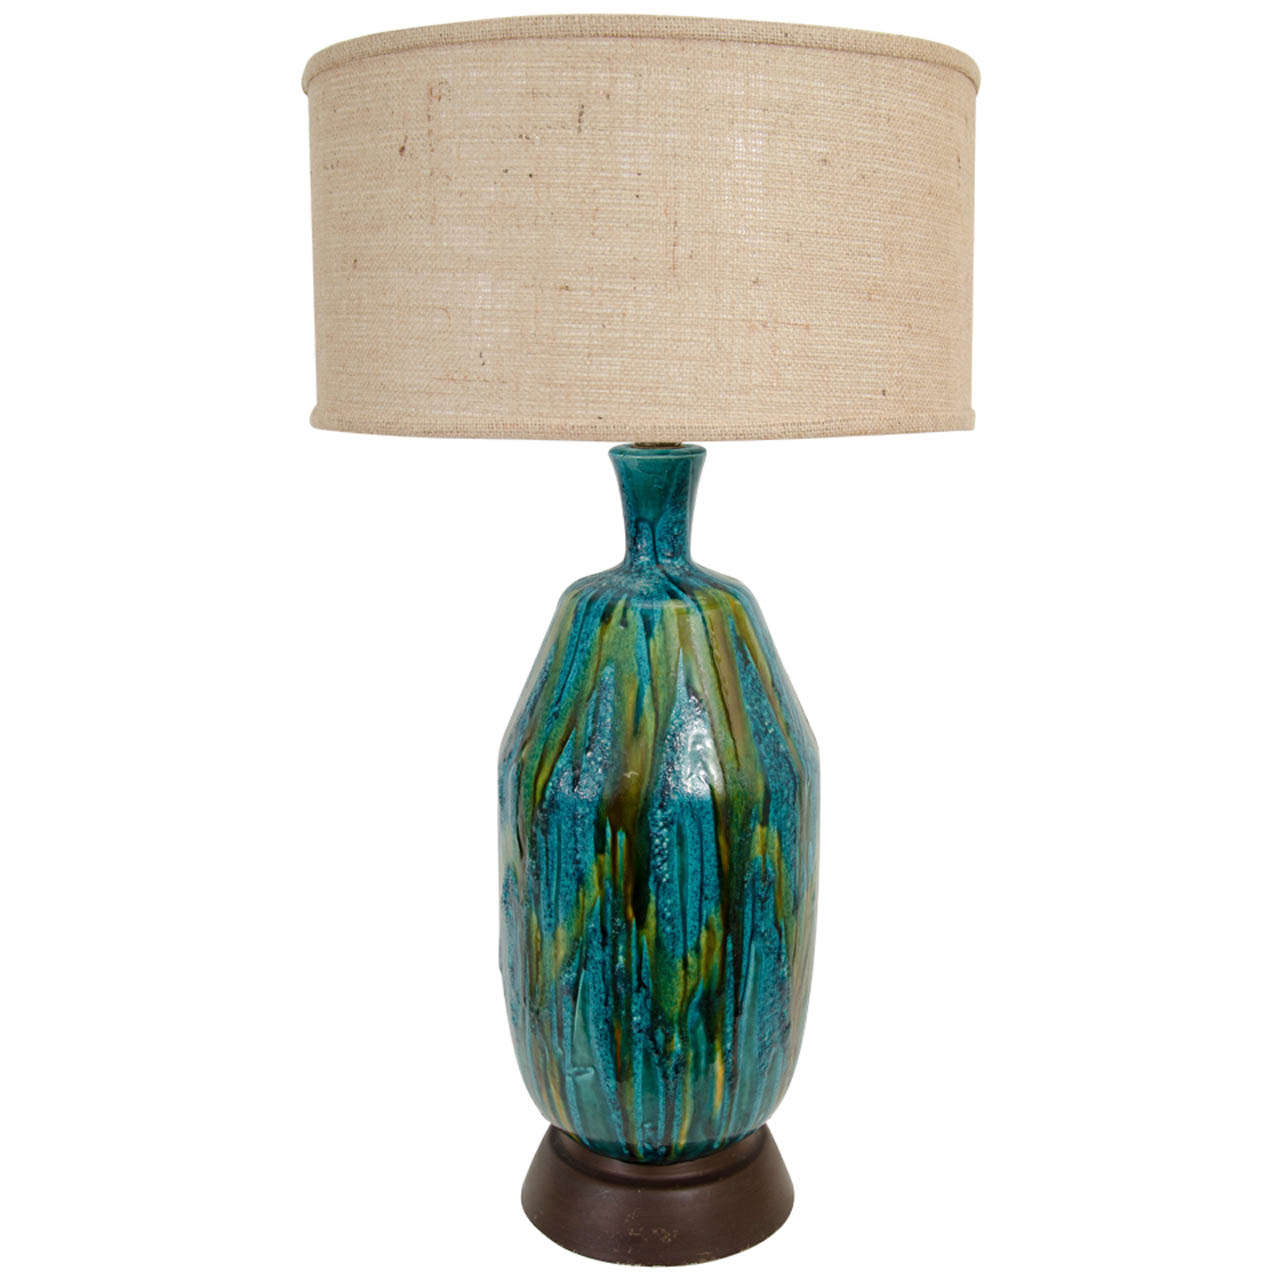 A Mid Century Ceramic Table Lamp In Green And Blue Glaze At 1stdibs